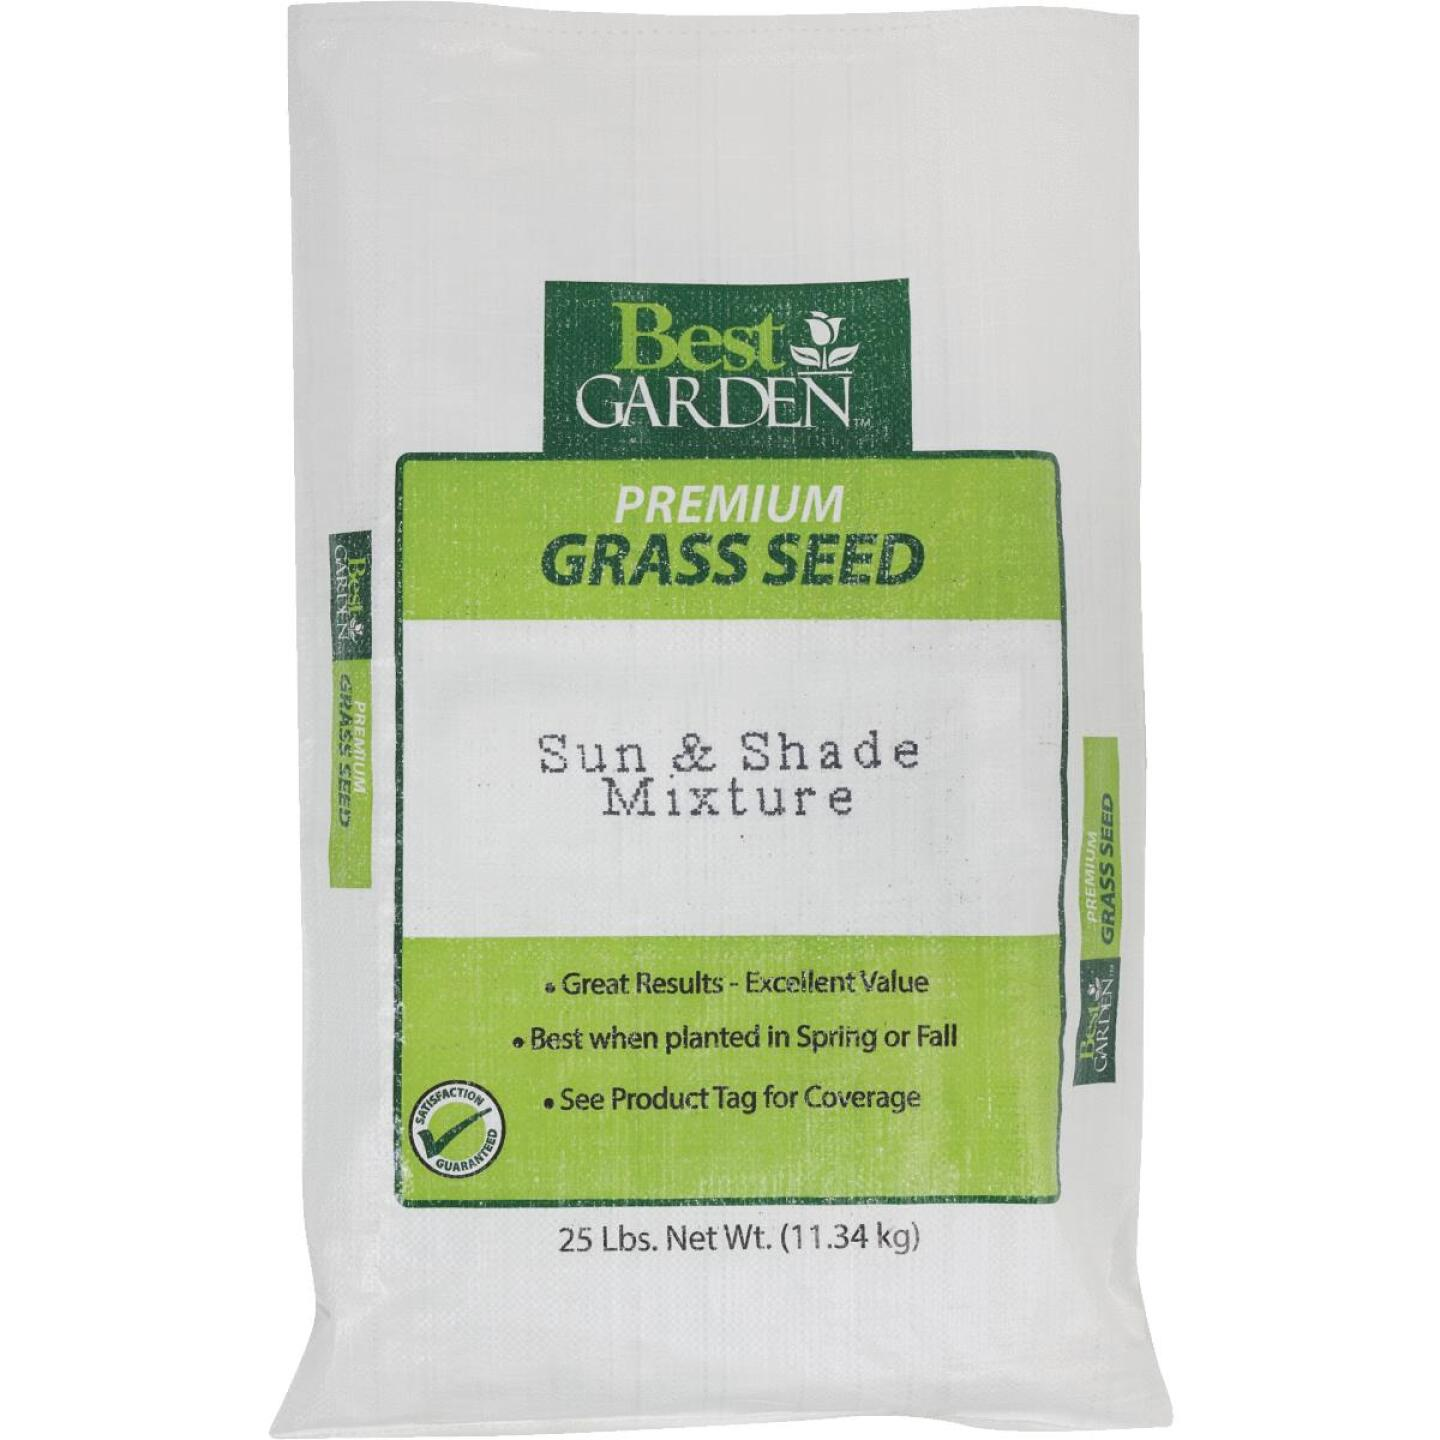 Best Garden 25 Lb. 6250 Sq. Ft. Coverage Sun & Shade Grass Seed Image 1